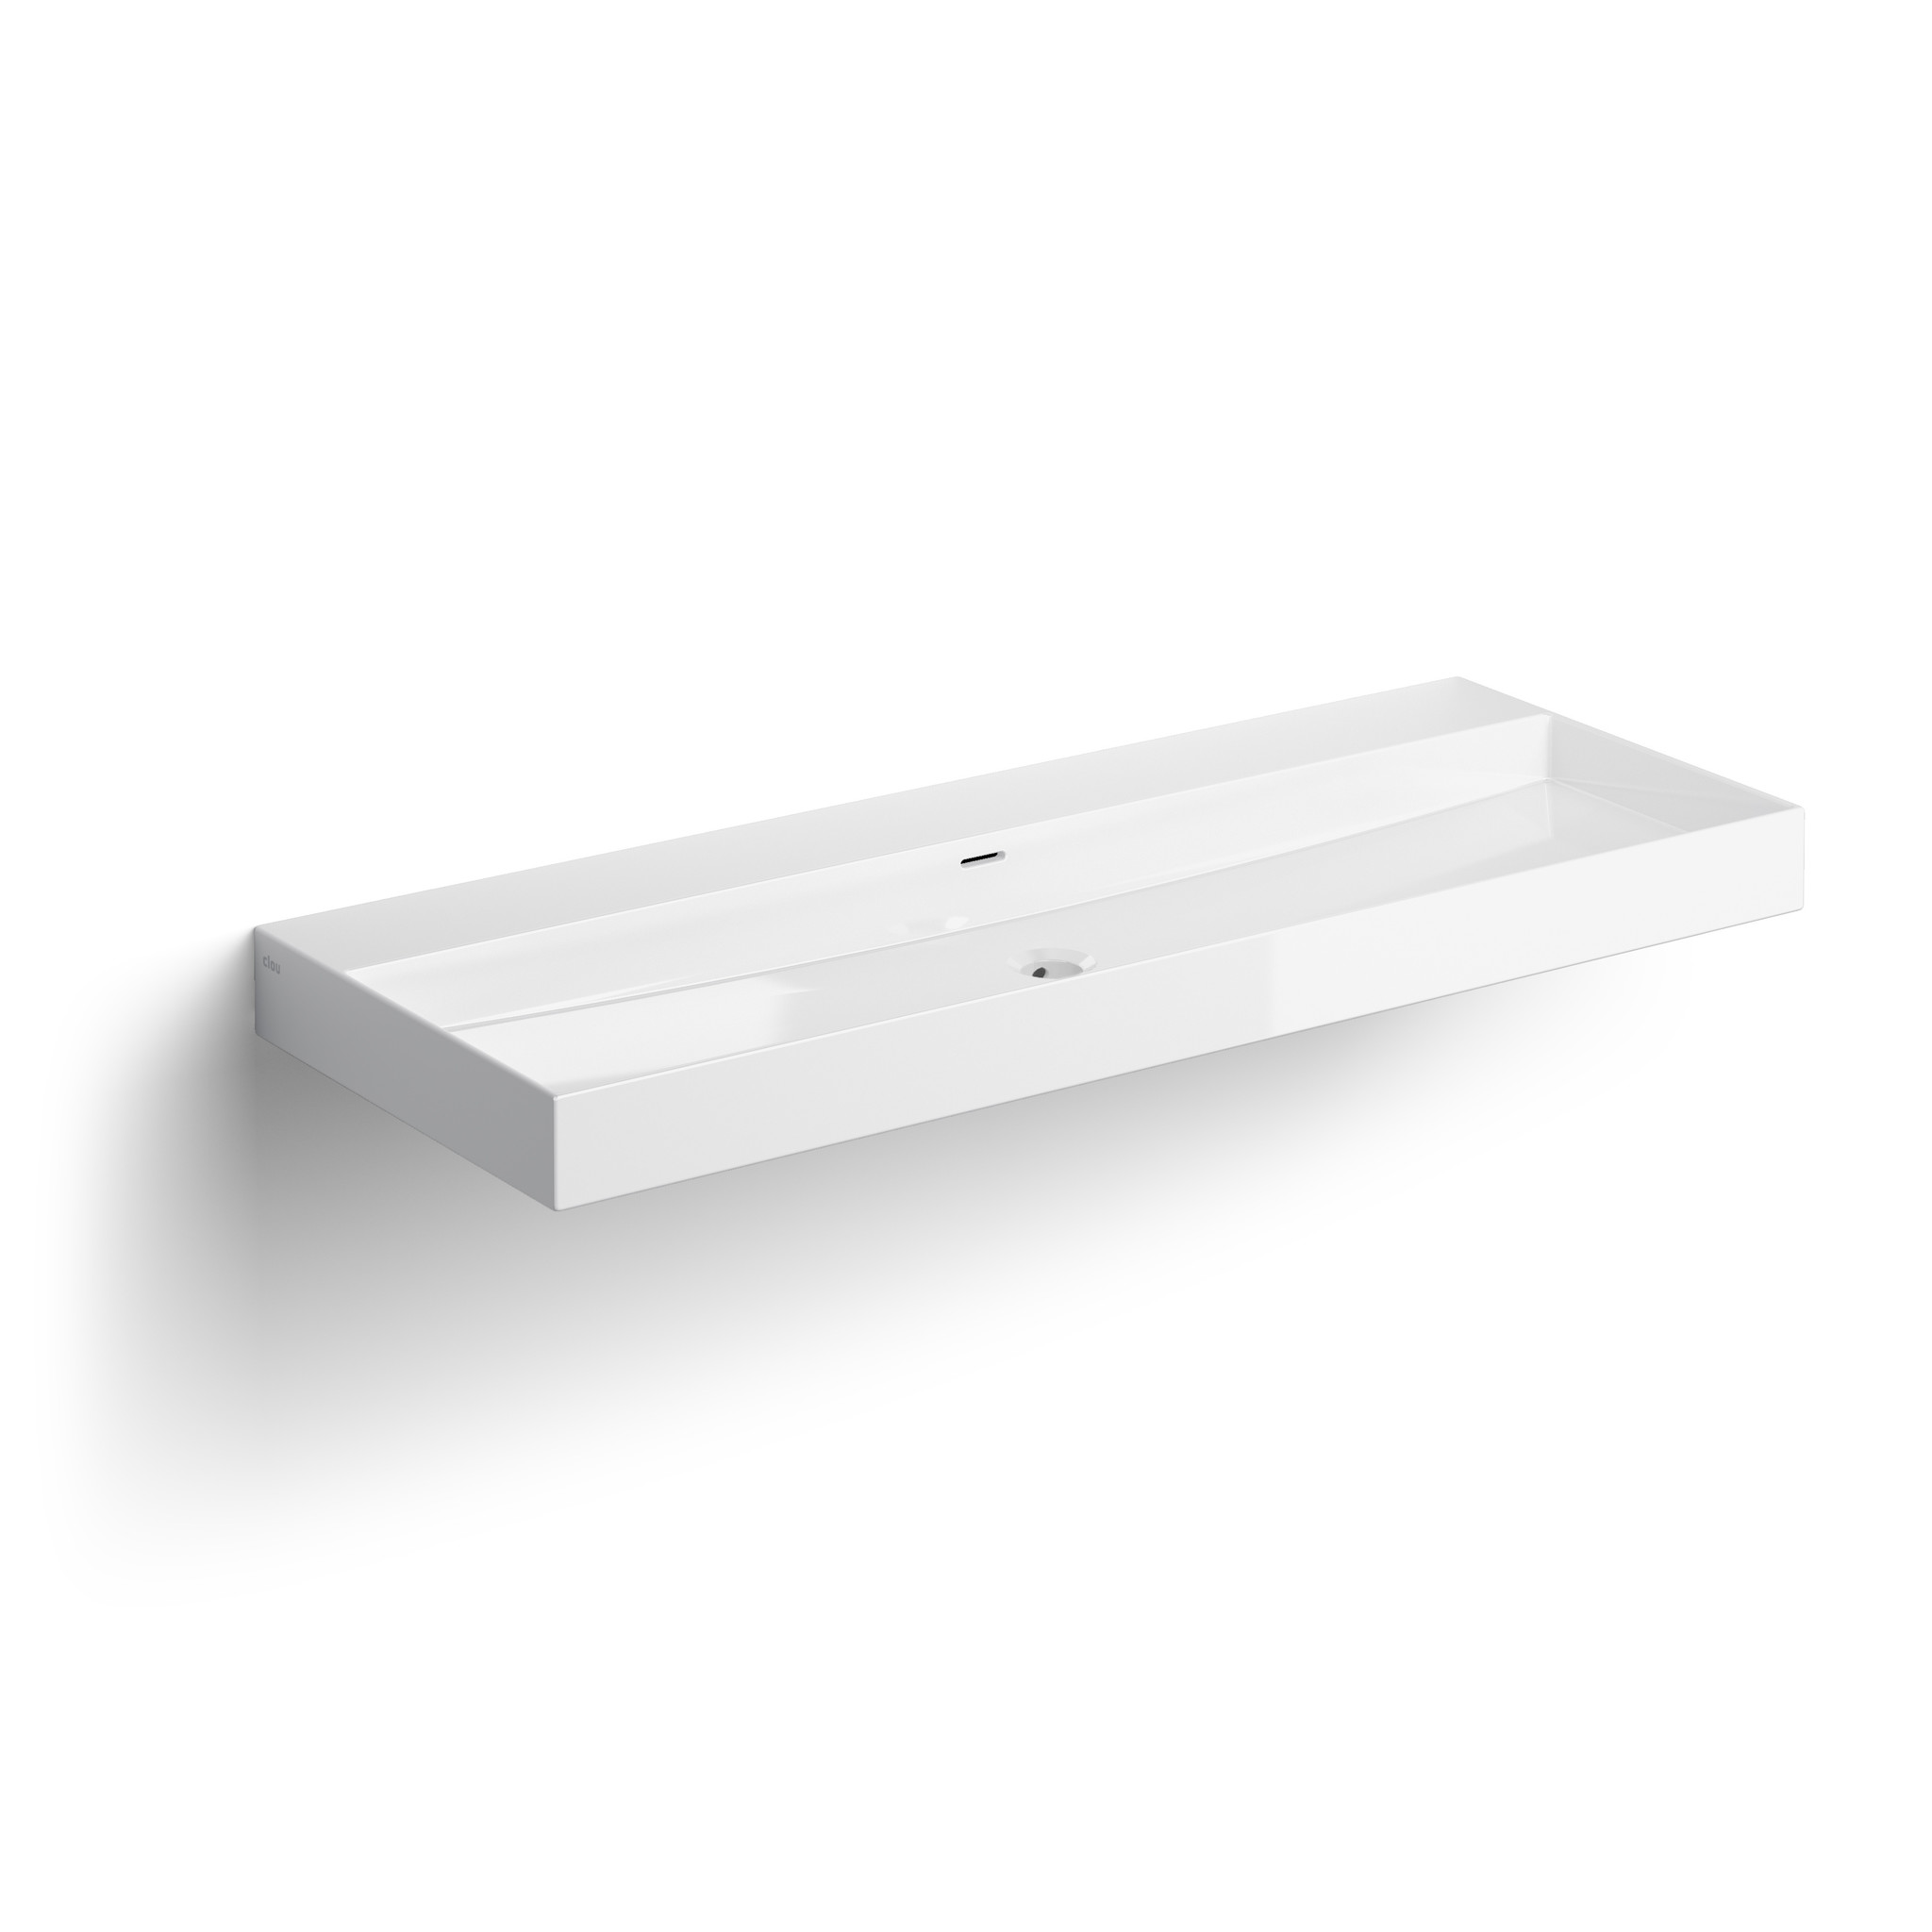 New Wash Me washbasin 110 cm